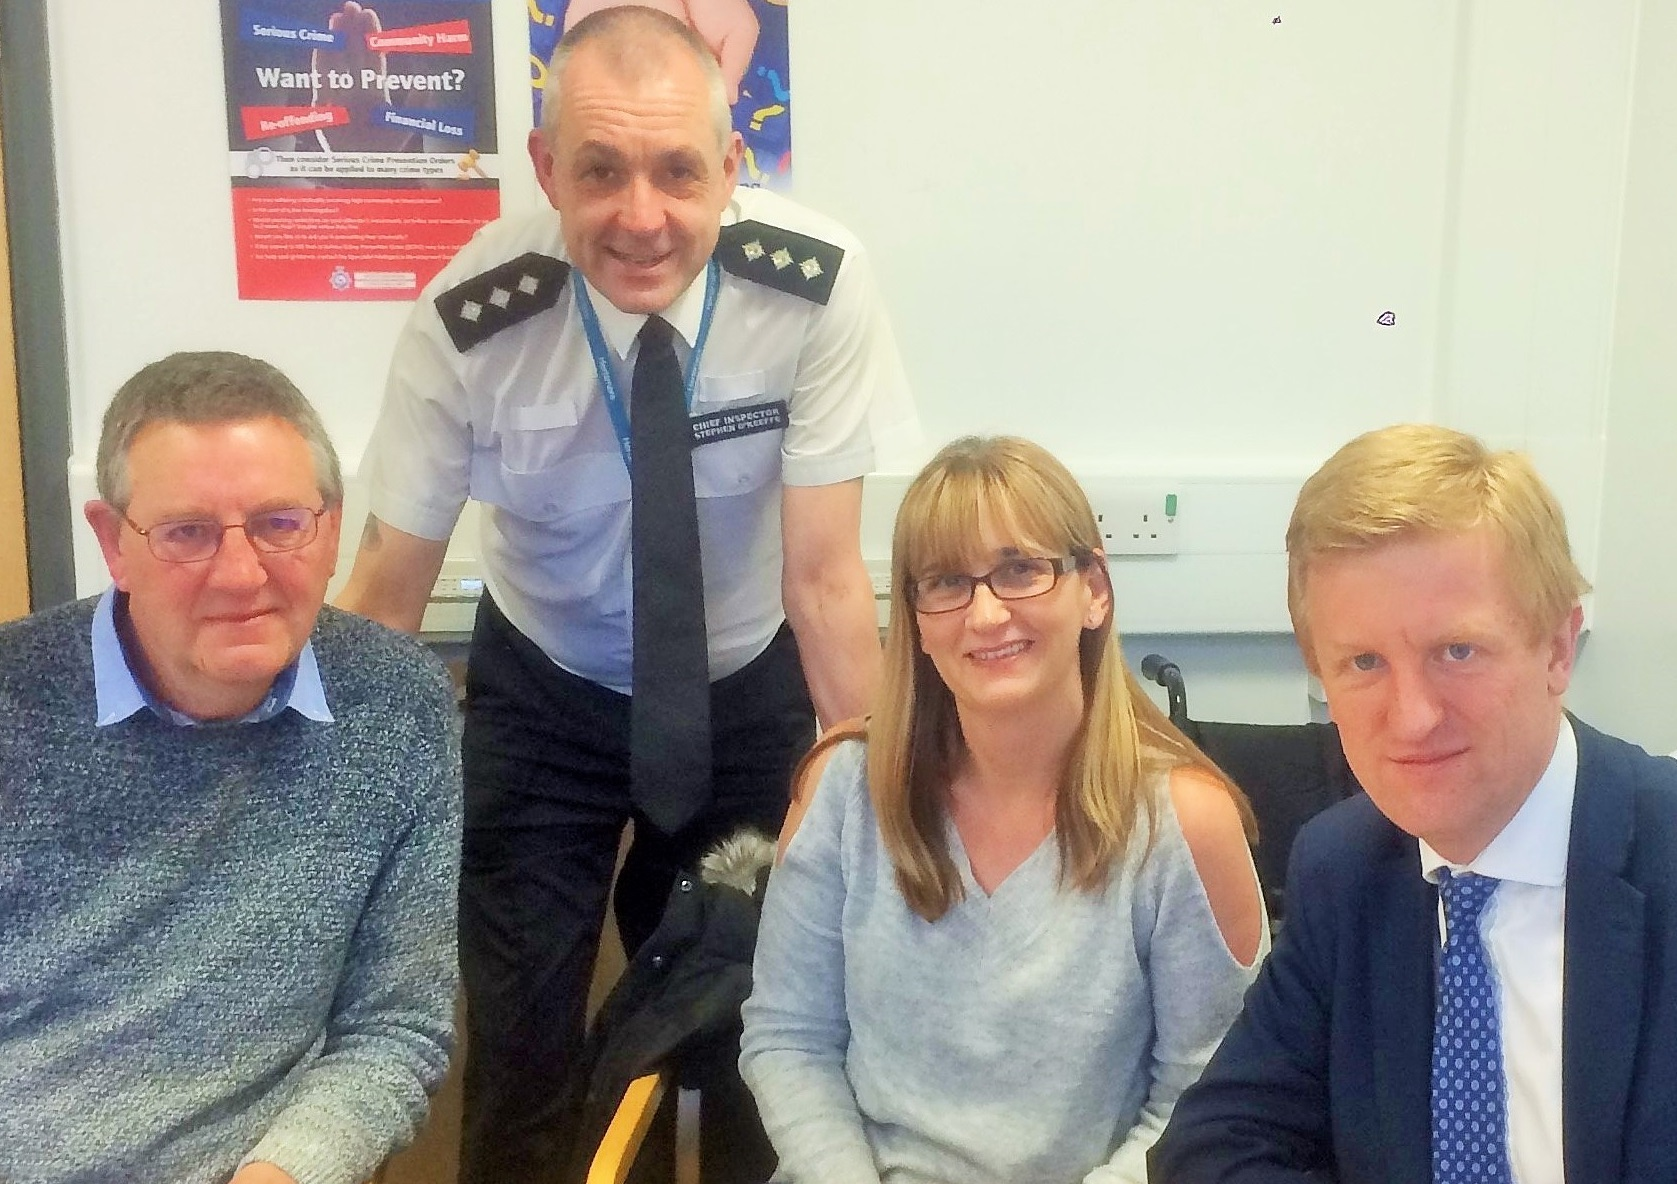 Oliver Dowden (right) with Chief Inspector O'Keeffe and neighbourhood watch members